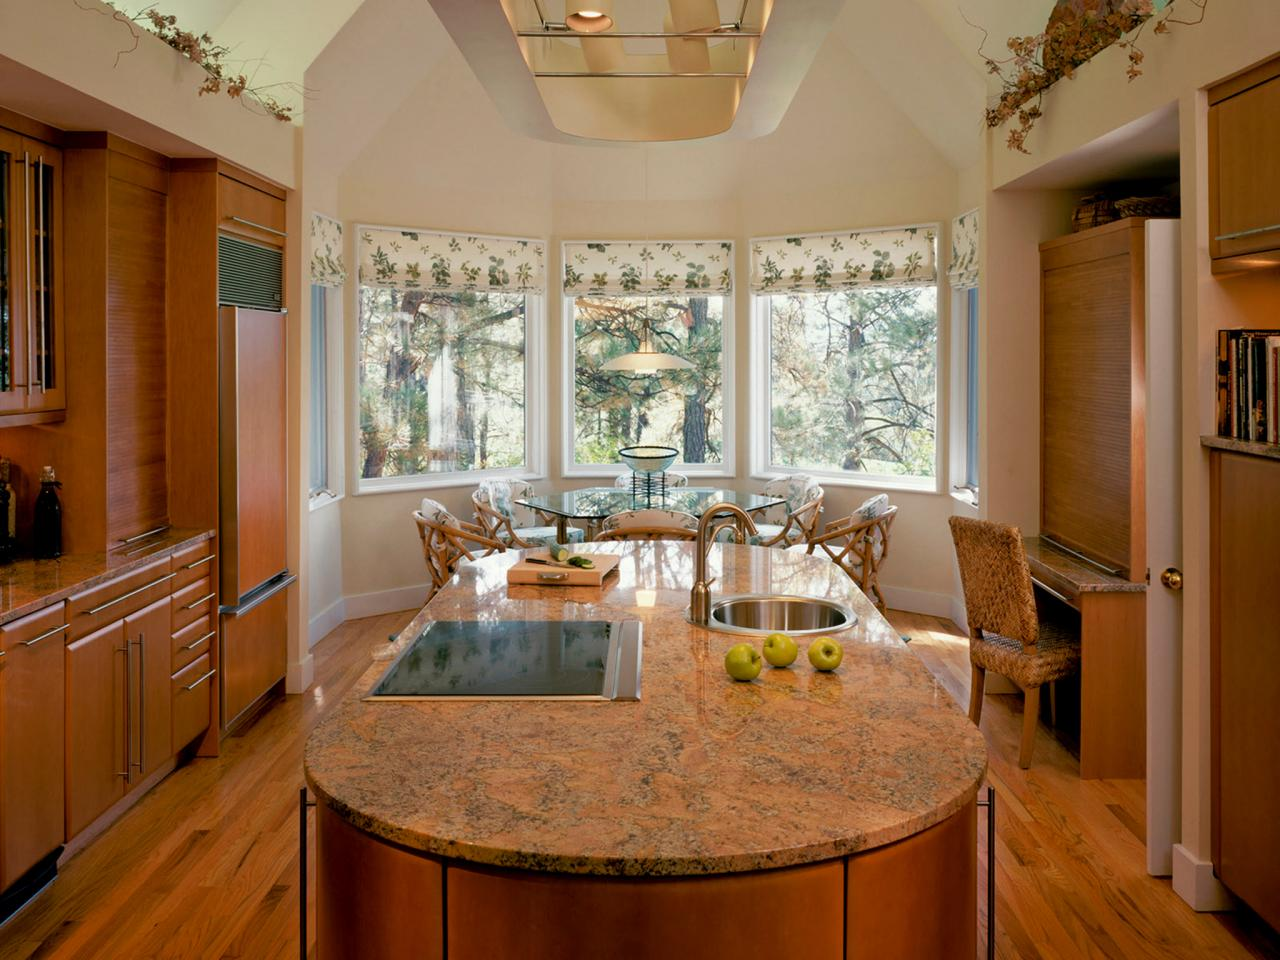 Kitchen bay window ideas pictures ideas tips from hgtv for Bay window remodel